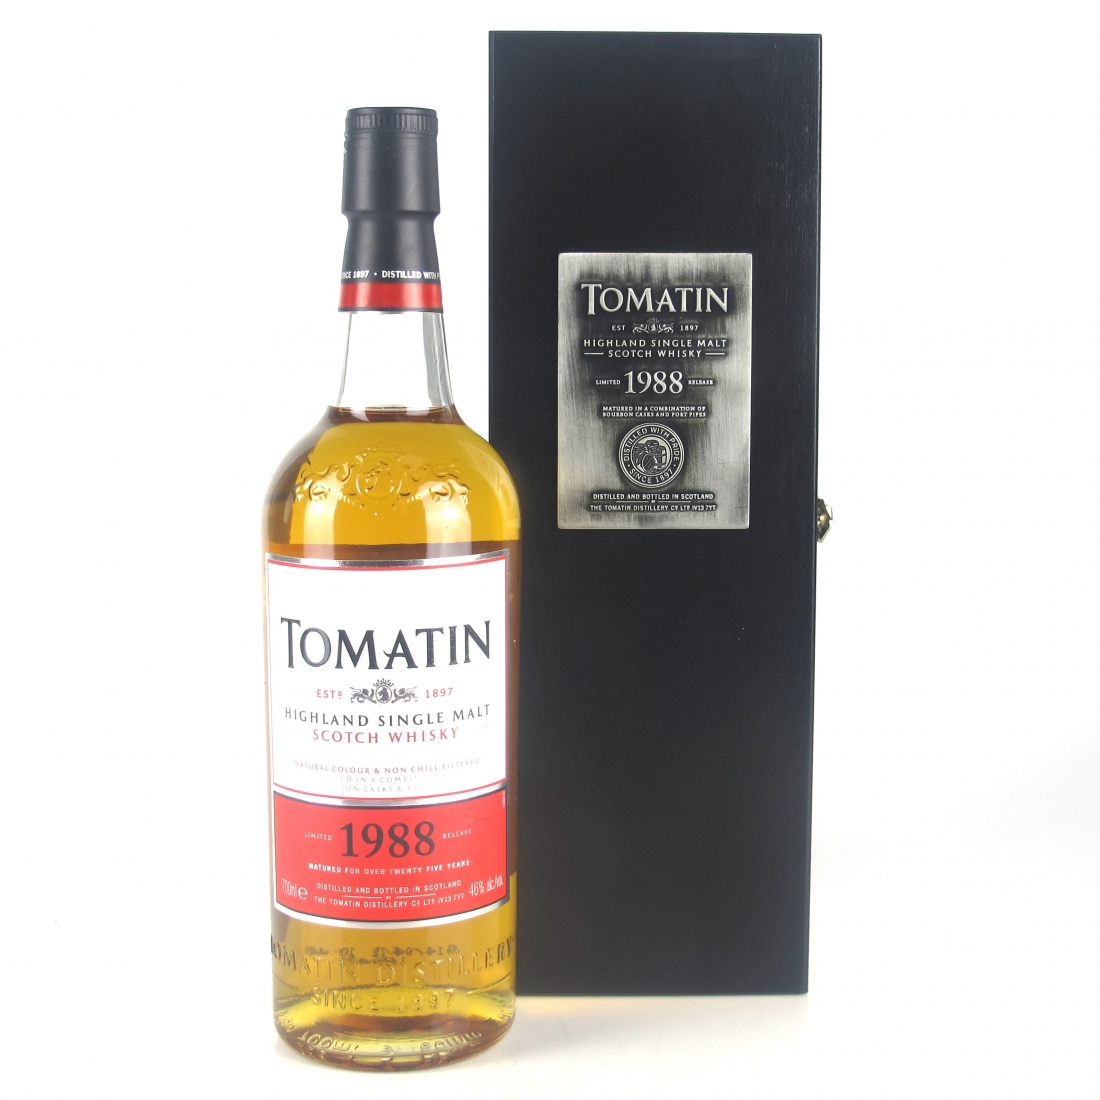 Tomatin 1988 25 Year Old Batch #1